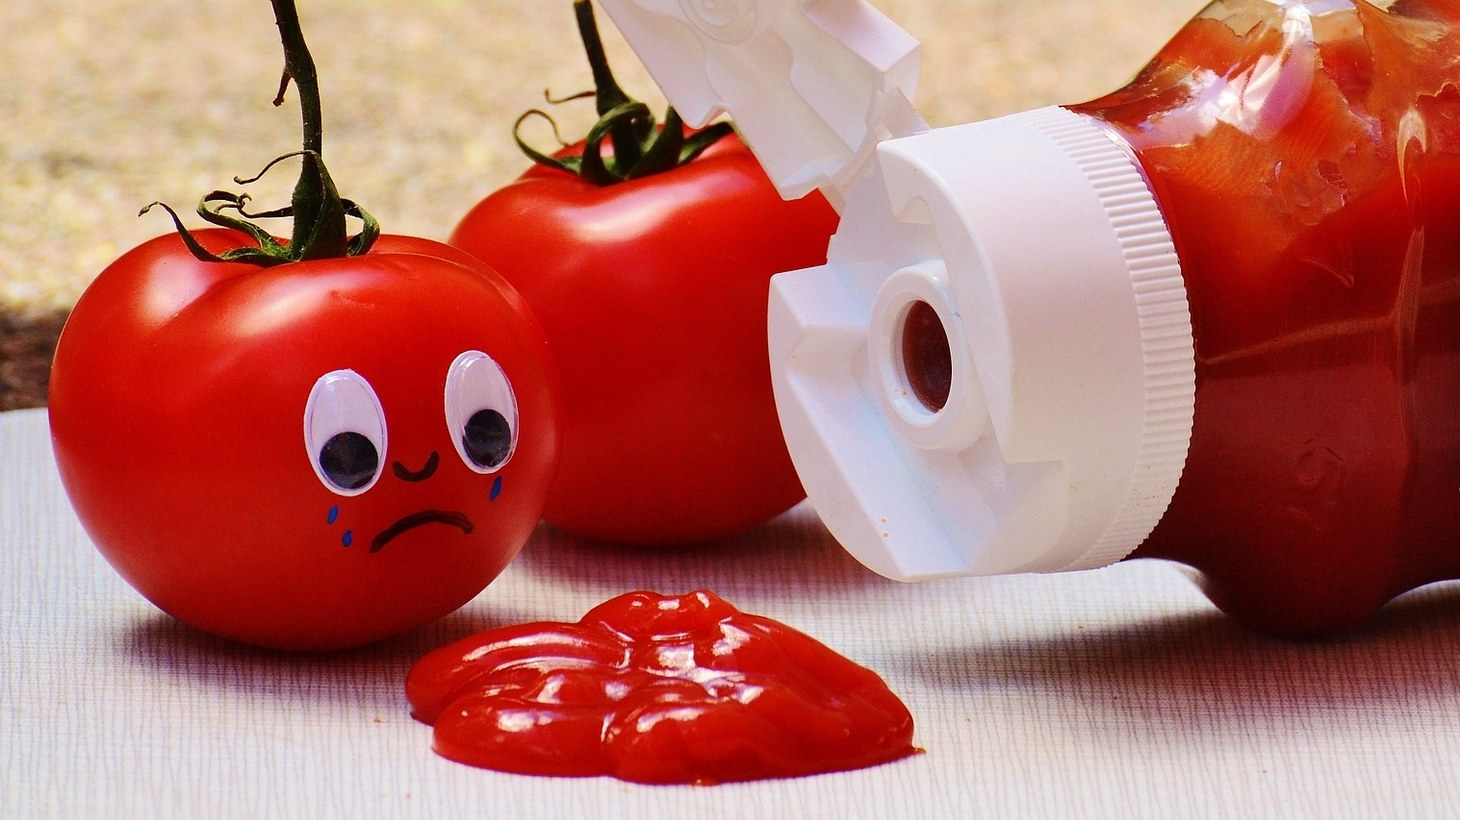 With more people ordering takeout food during the pandemic, demand is up for ketchup packets, but Heinz is struggling to produce enough supplies.